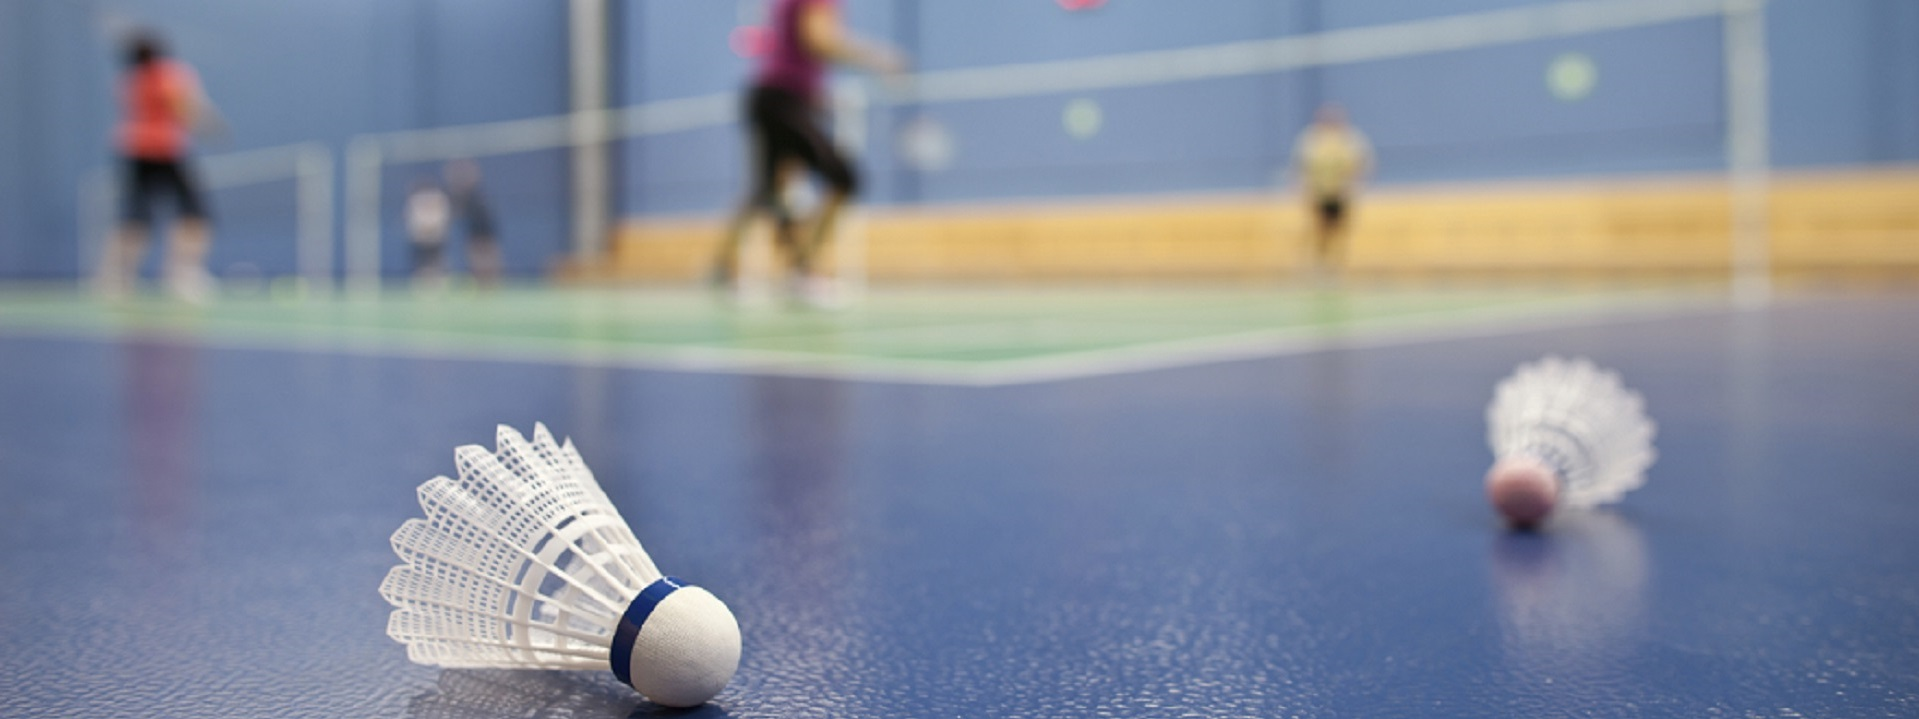 Hire our excellent sports facilities